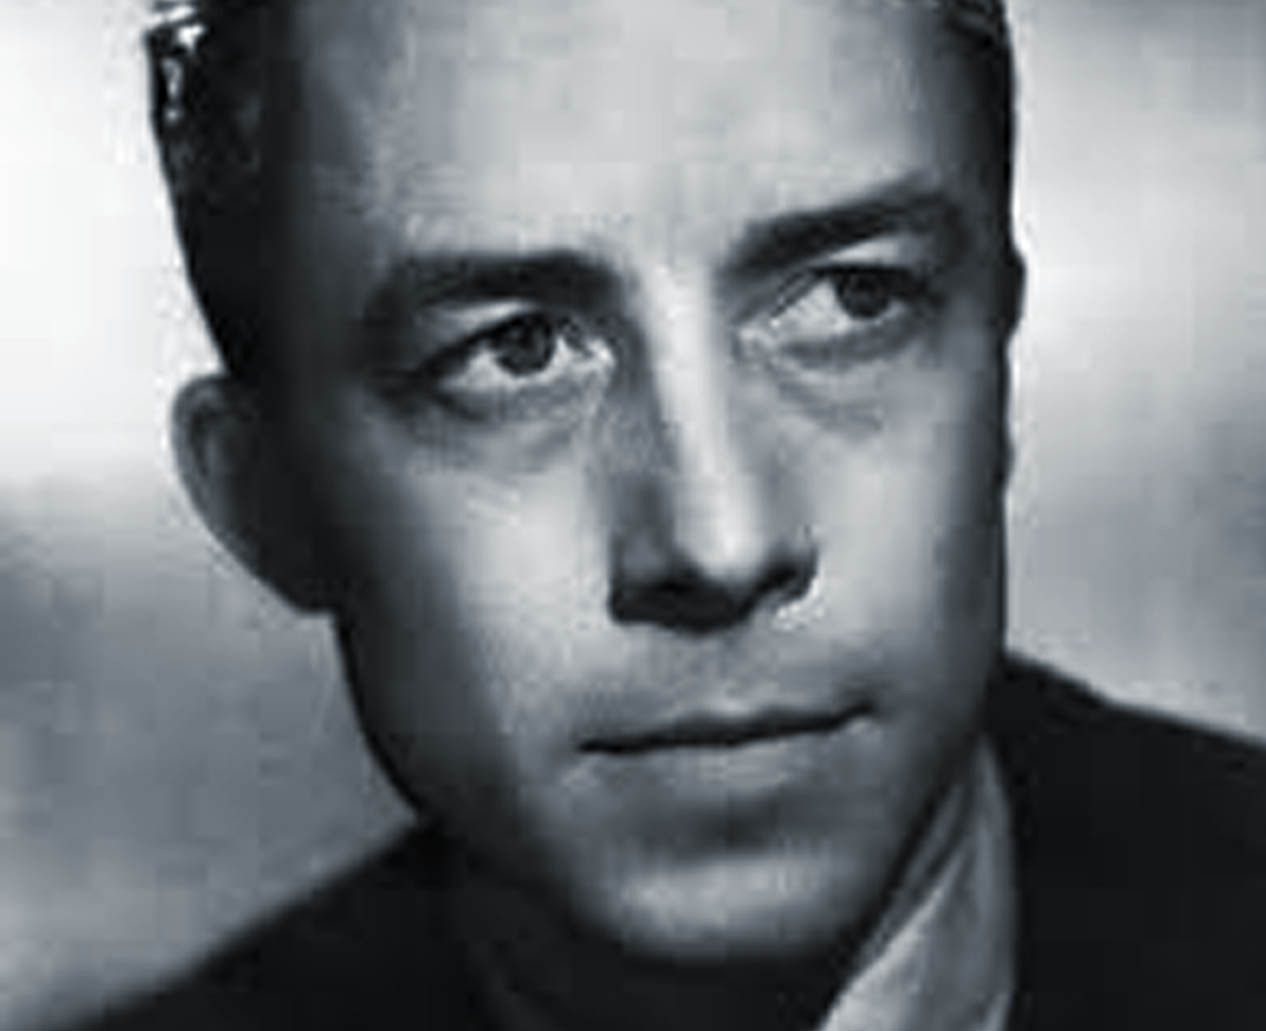 albert camus 1 Albert camus was born in algeria in 1913 his childhood was poor, although not unhappy he studied philosophy at the university of algiers, and became a journalist as well as organizing the théâtre de l'équipe, a young avant-garde dramatic group.